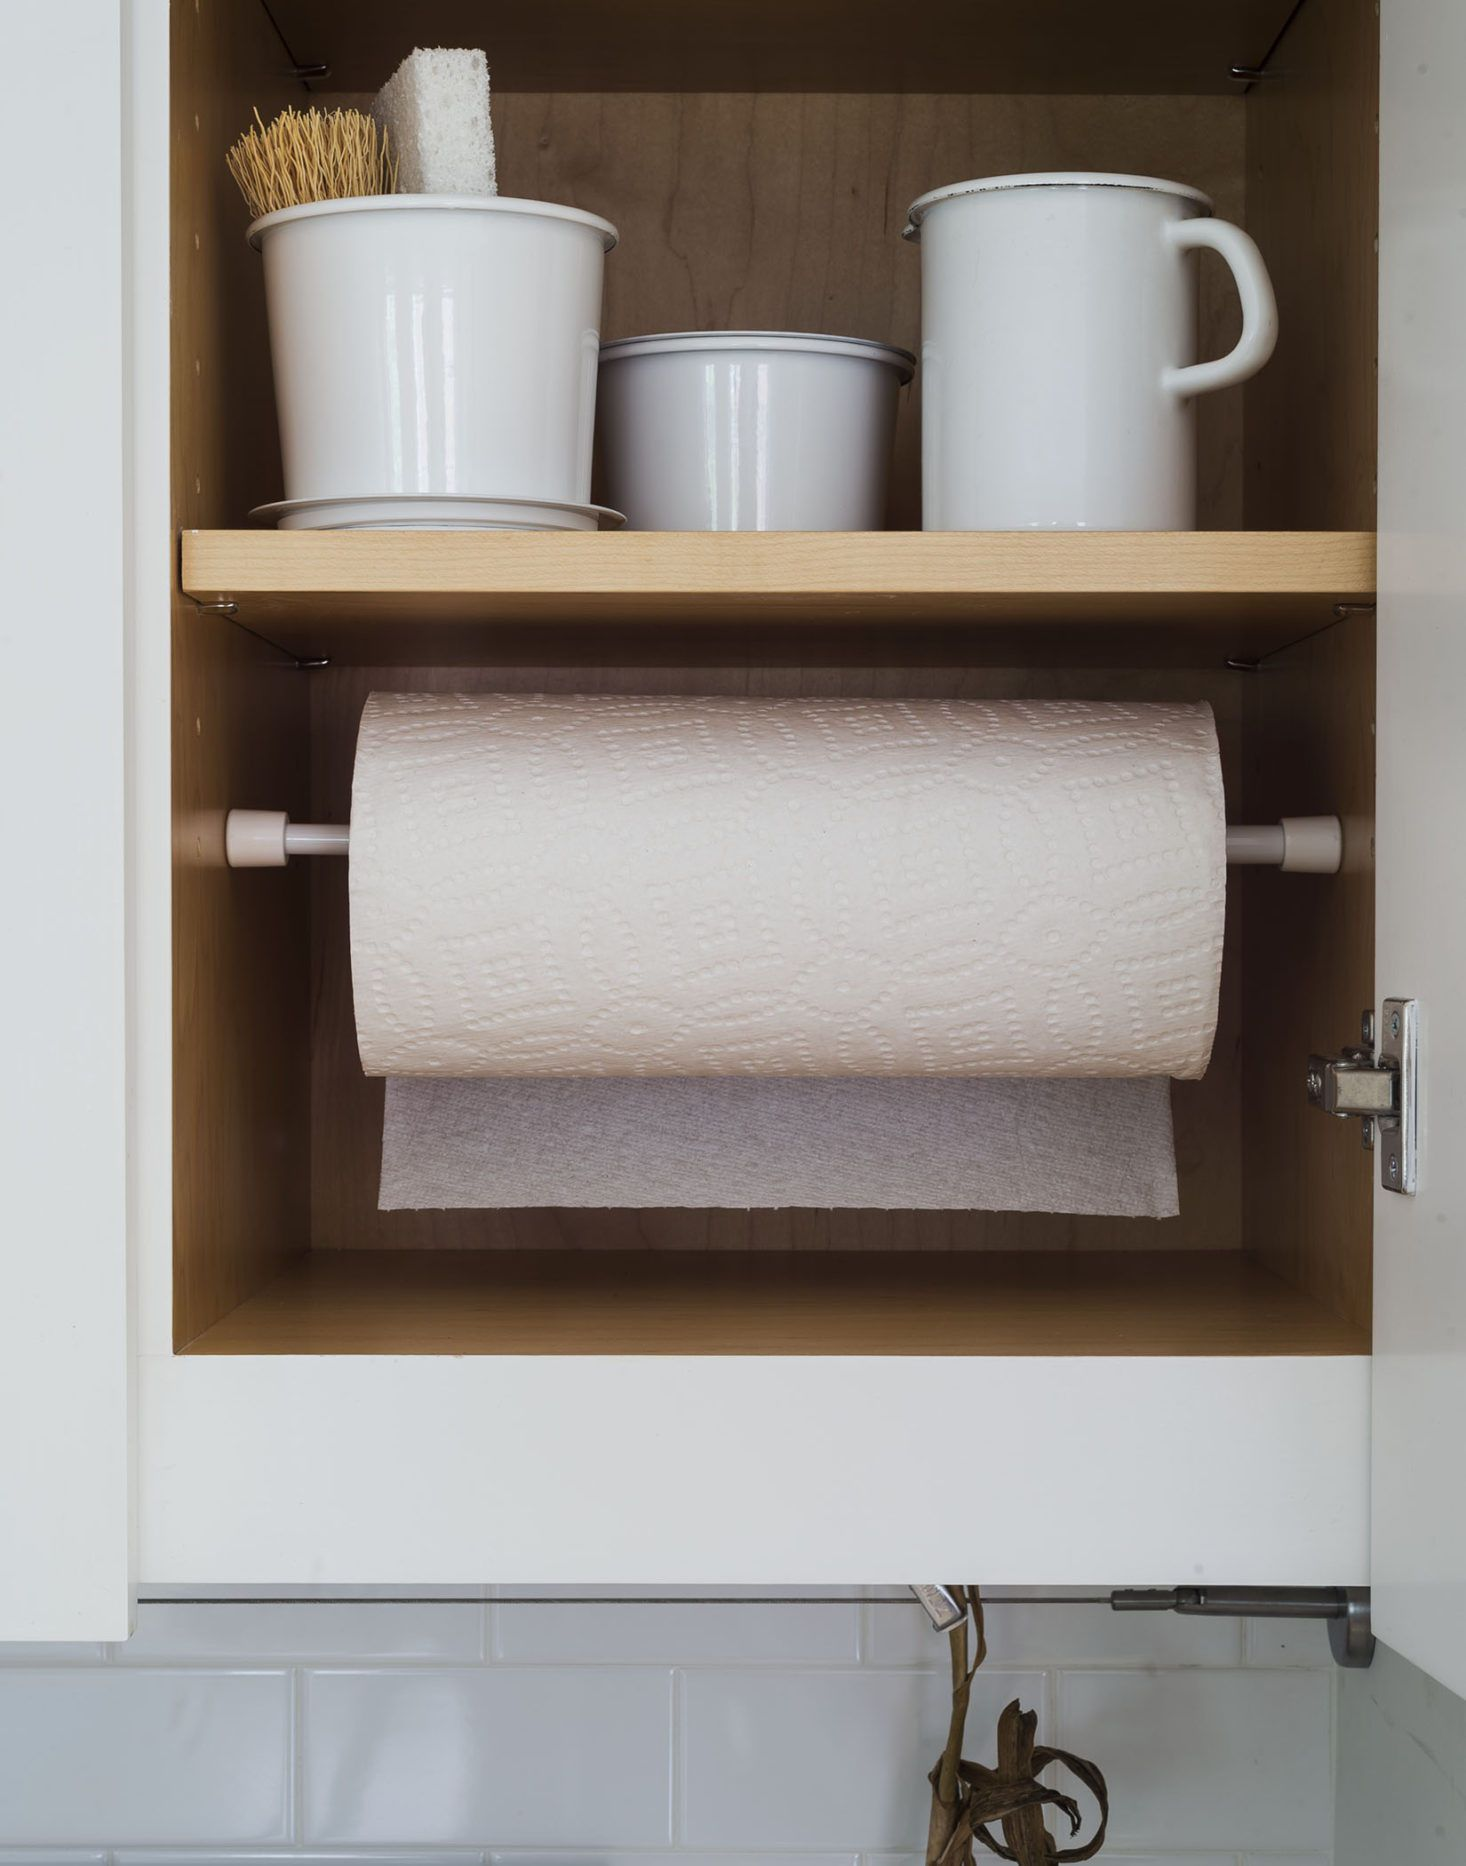 Aha Hack Tension Rod As Paper Towel Holder The Organized Home Kitchen Towels Storage Paper Towel Holder Paper Towel Holder Kitchen